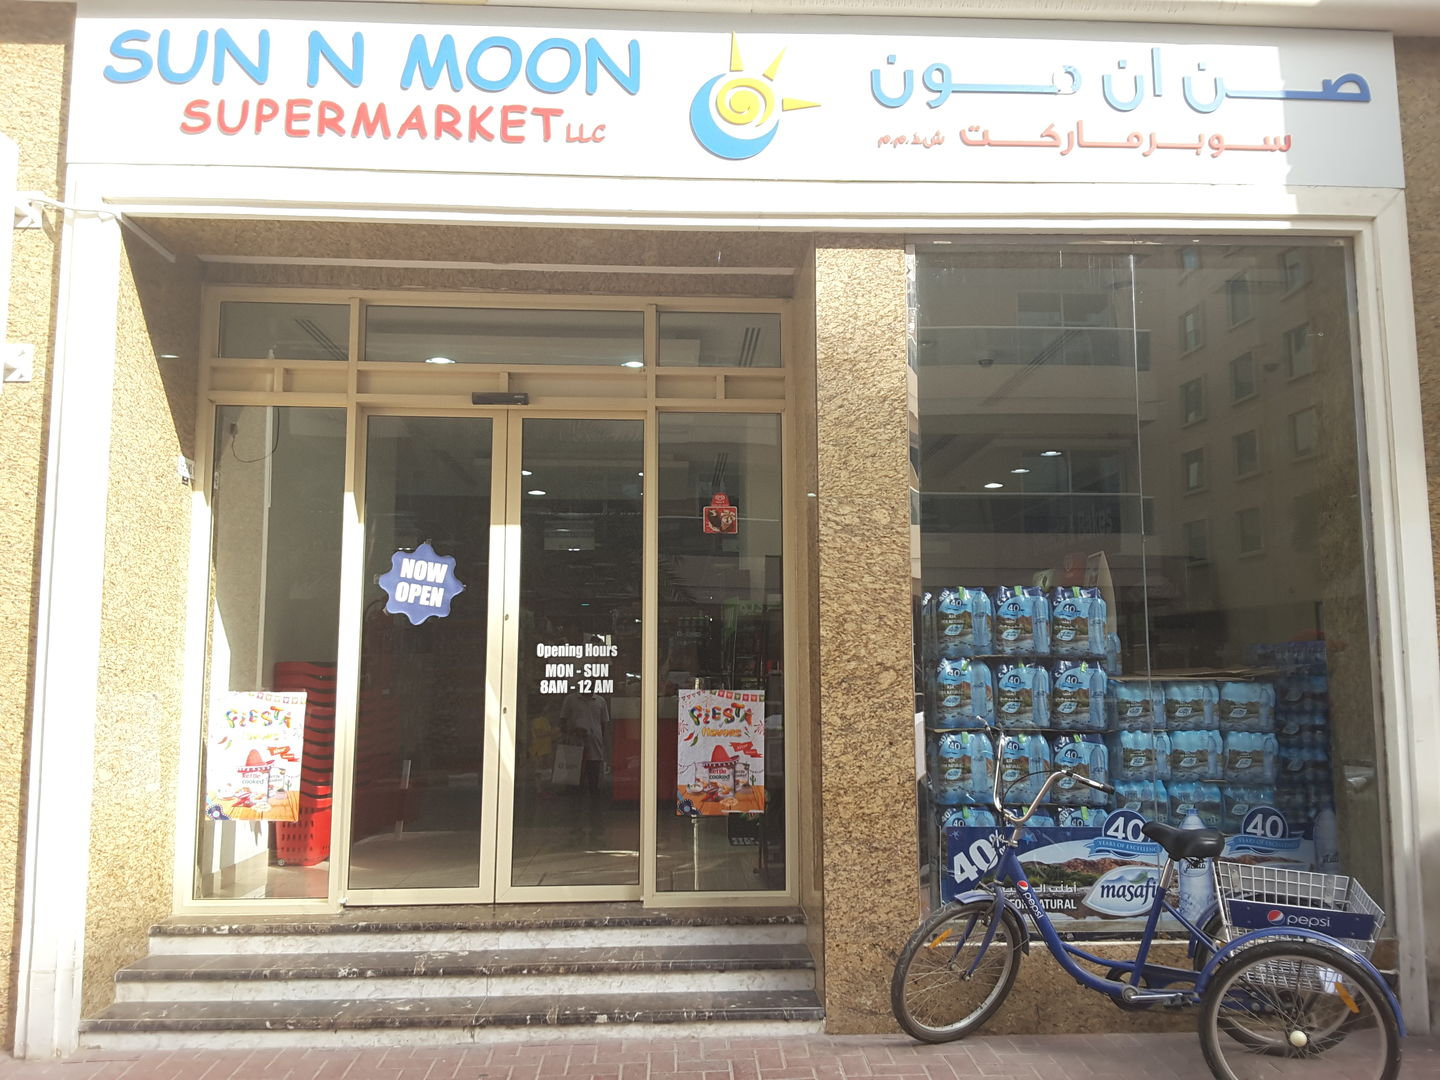 HiDubai-business-sun-n-moon-supermarket-food-beverage-supermarkets-hypermarkets-grocery-stores-al-barsha-1-dubai-2